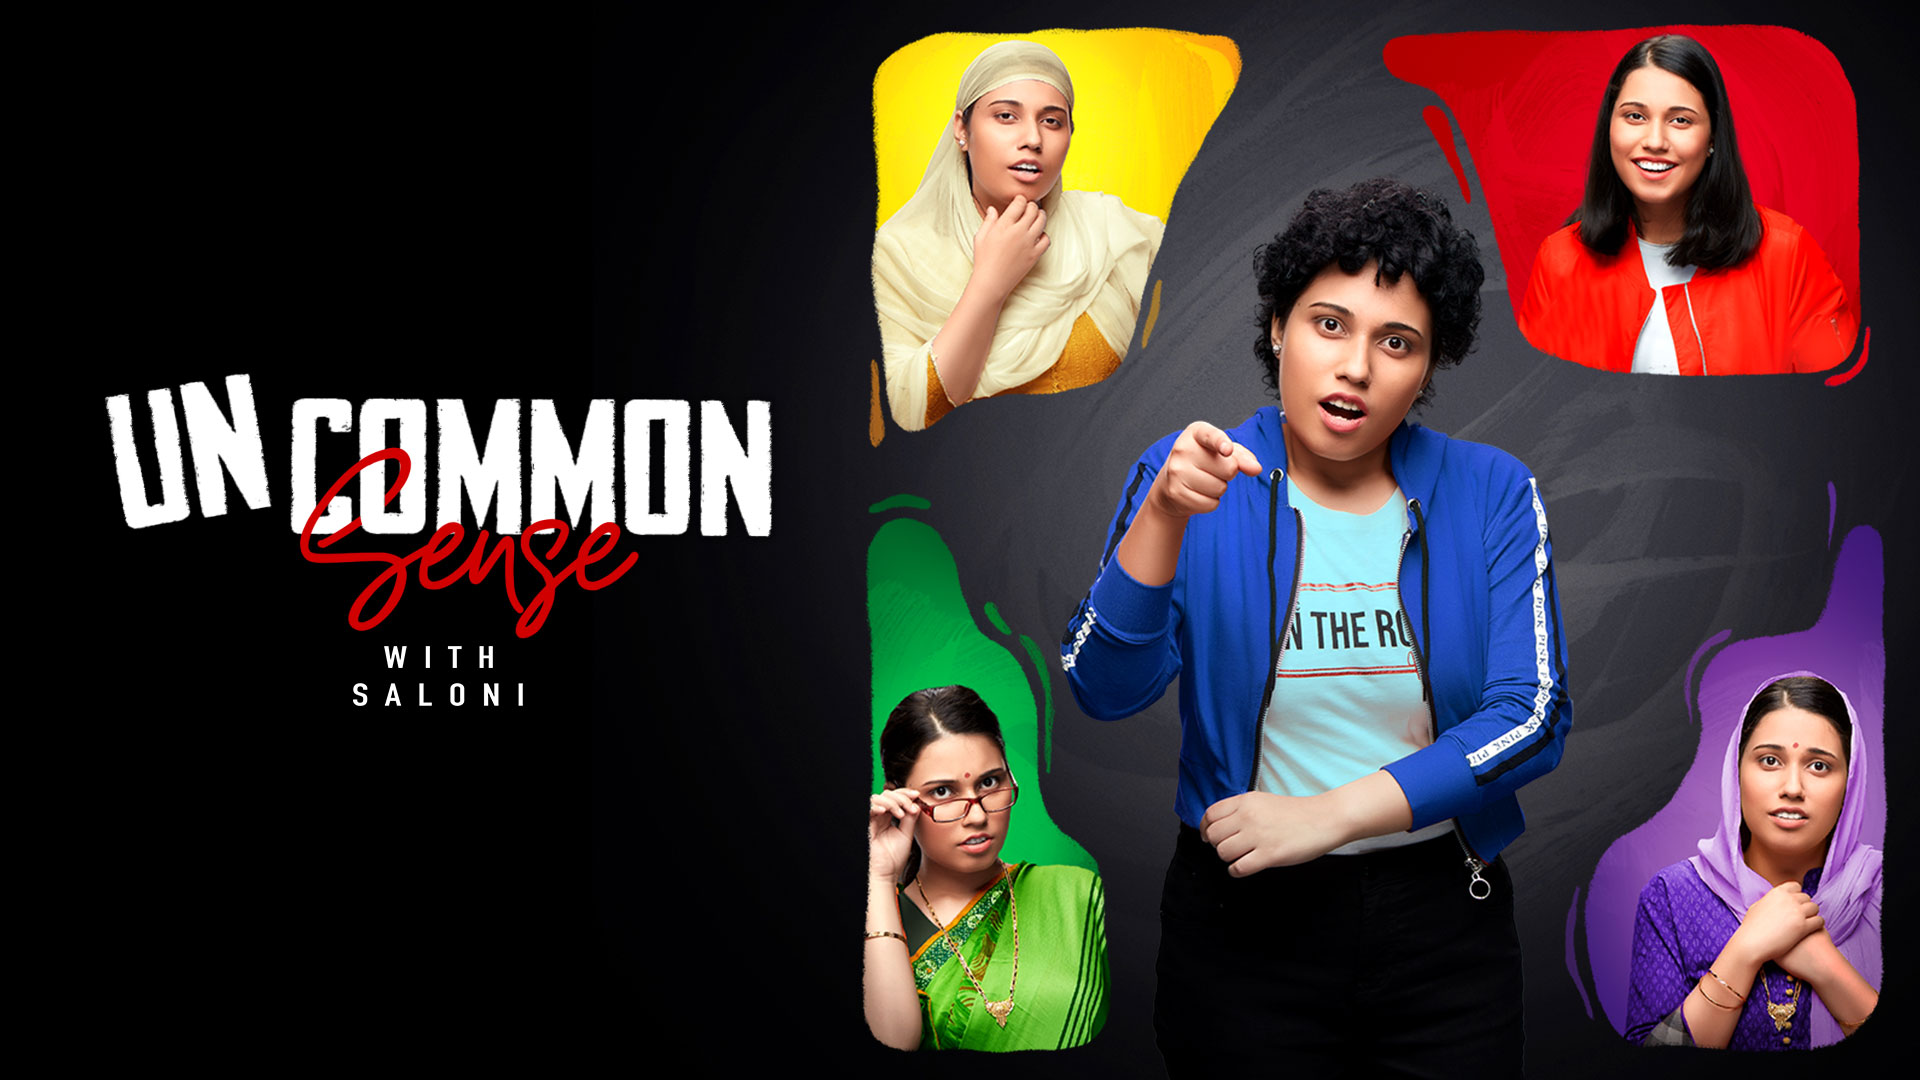 Watch Uncommon Sense With Saloni Online - All Latest Episodes Available on  SonyLIV